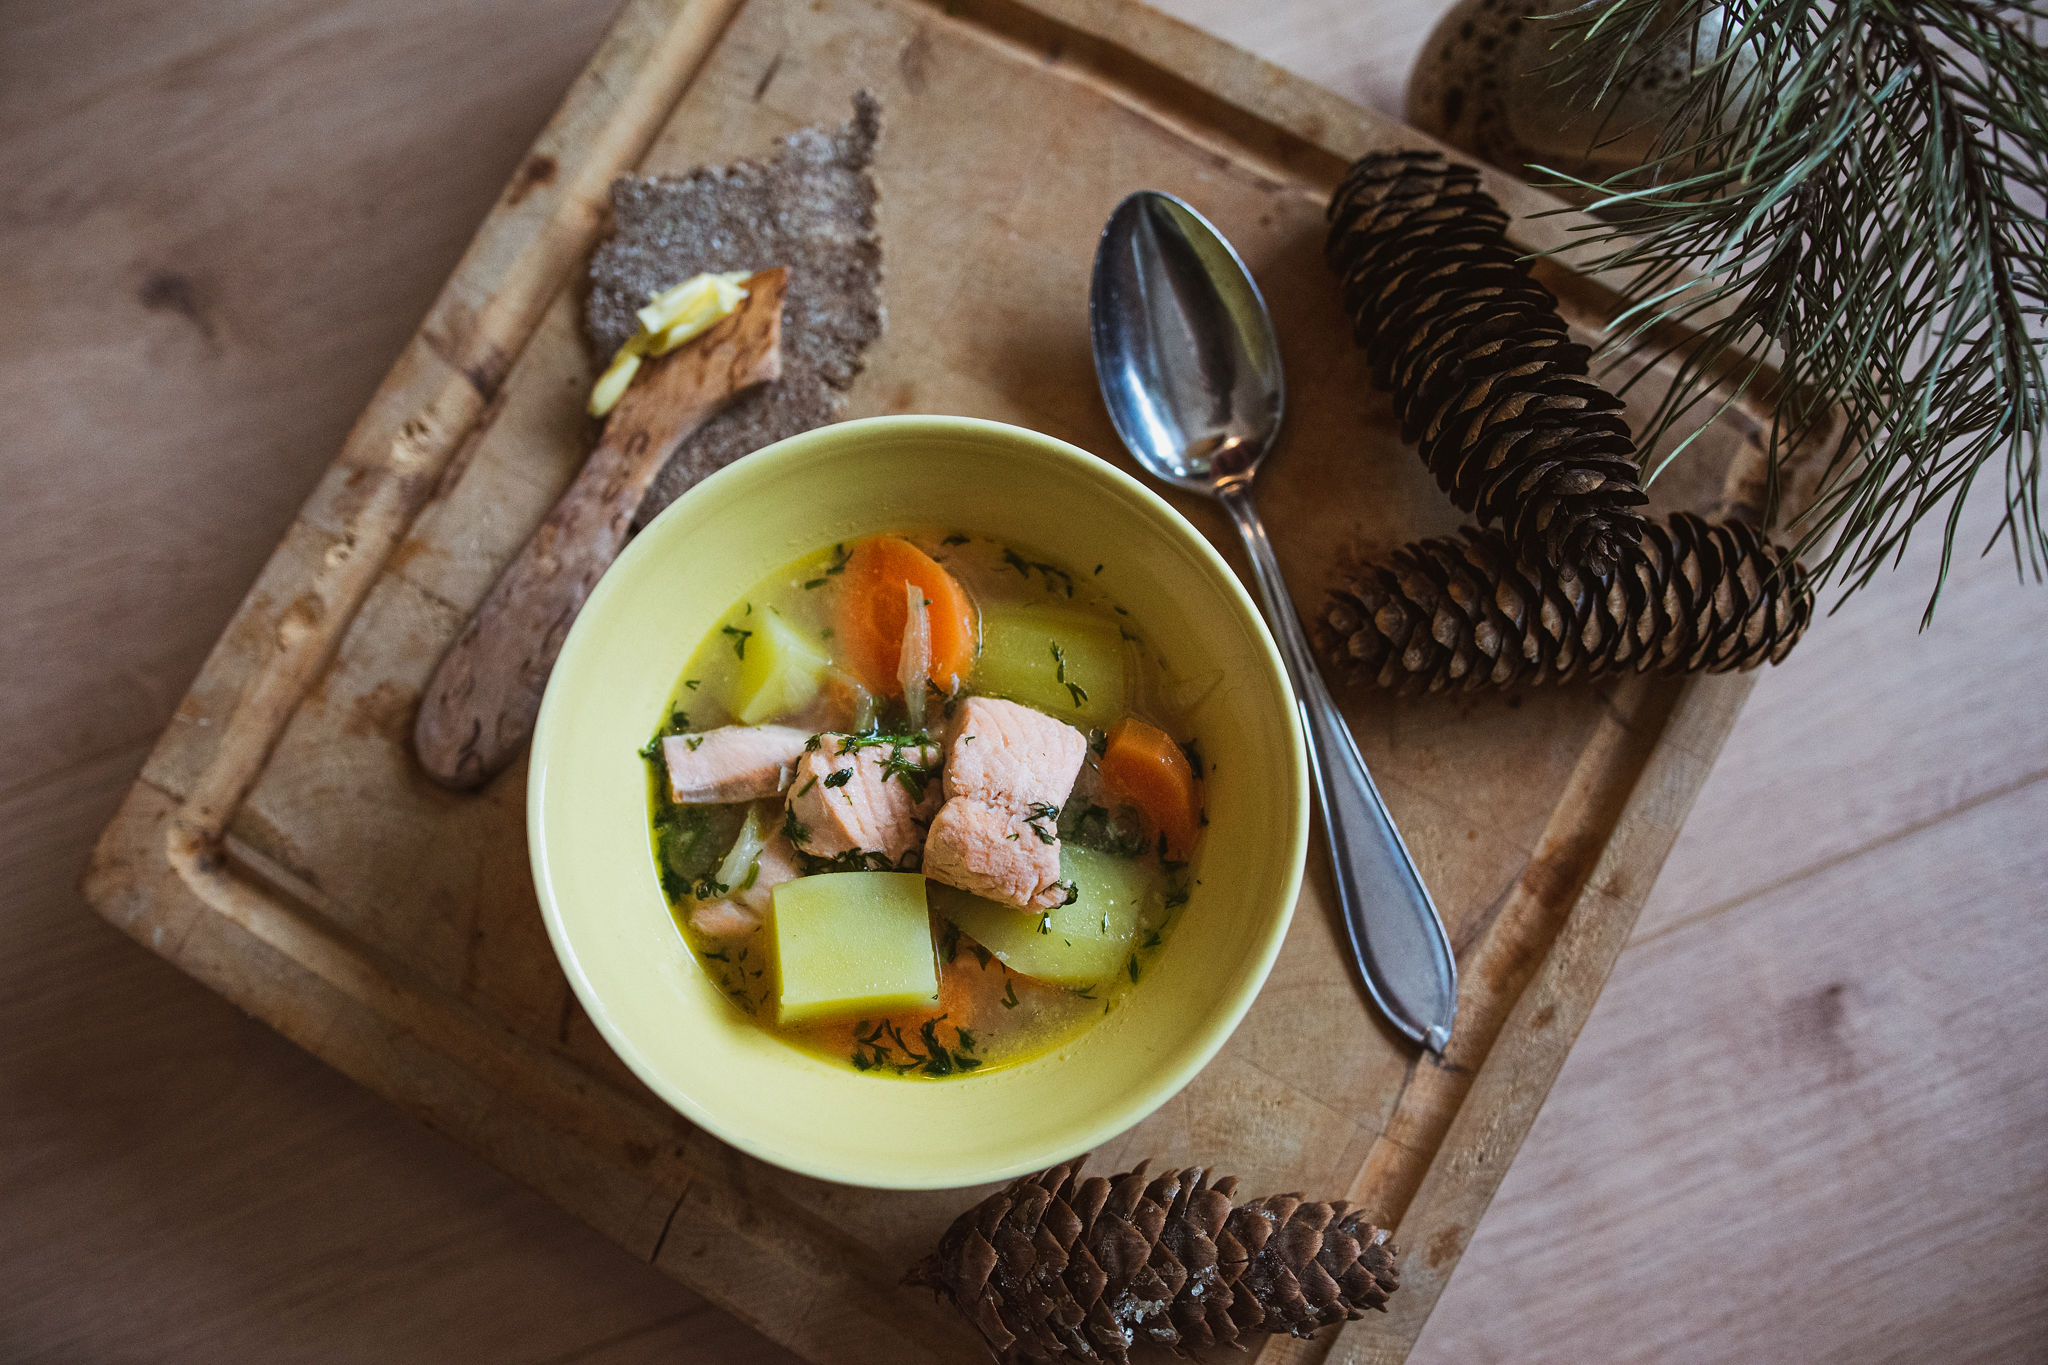 Paula's traditional salmon soup recipe with Finnish homemade rye cracker